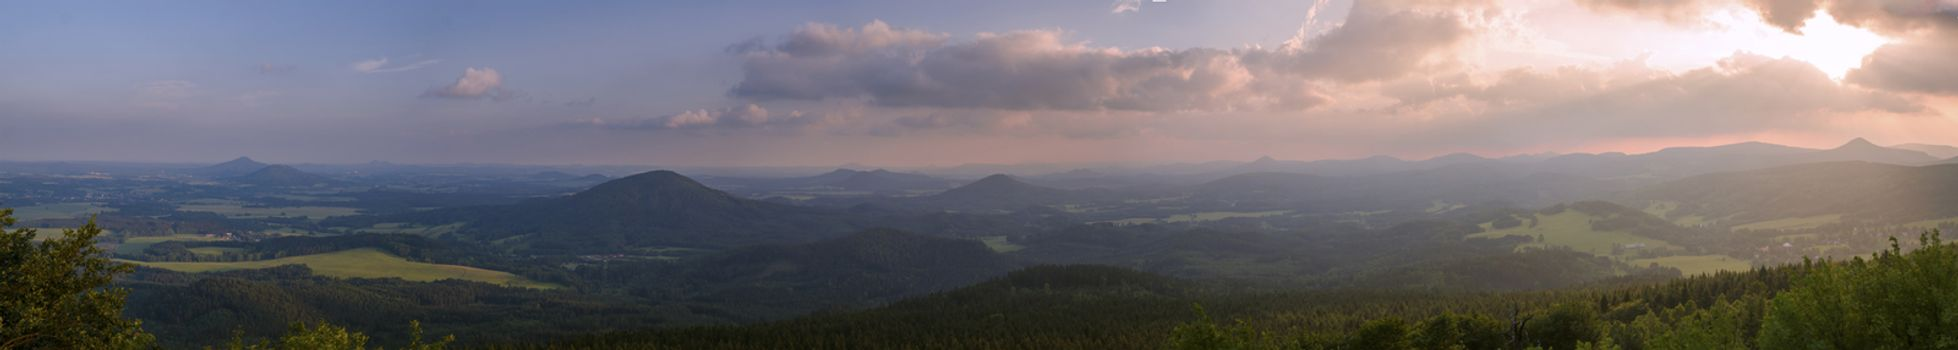 Lusatian Mountains (luzicke hory) wide panorama, panoramic view from Hochwald (Hvozd) mountain on czech german borders with blue green hills forest and pink cloudy sunset sky background